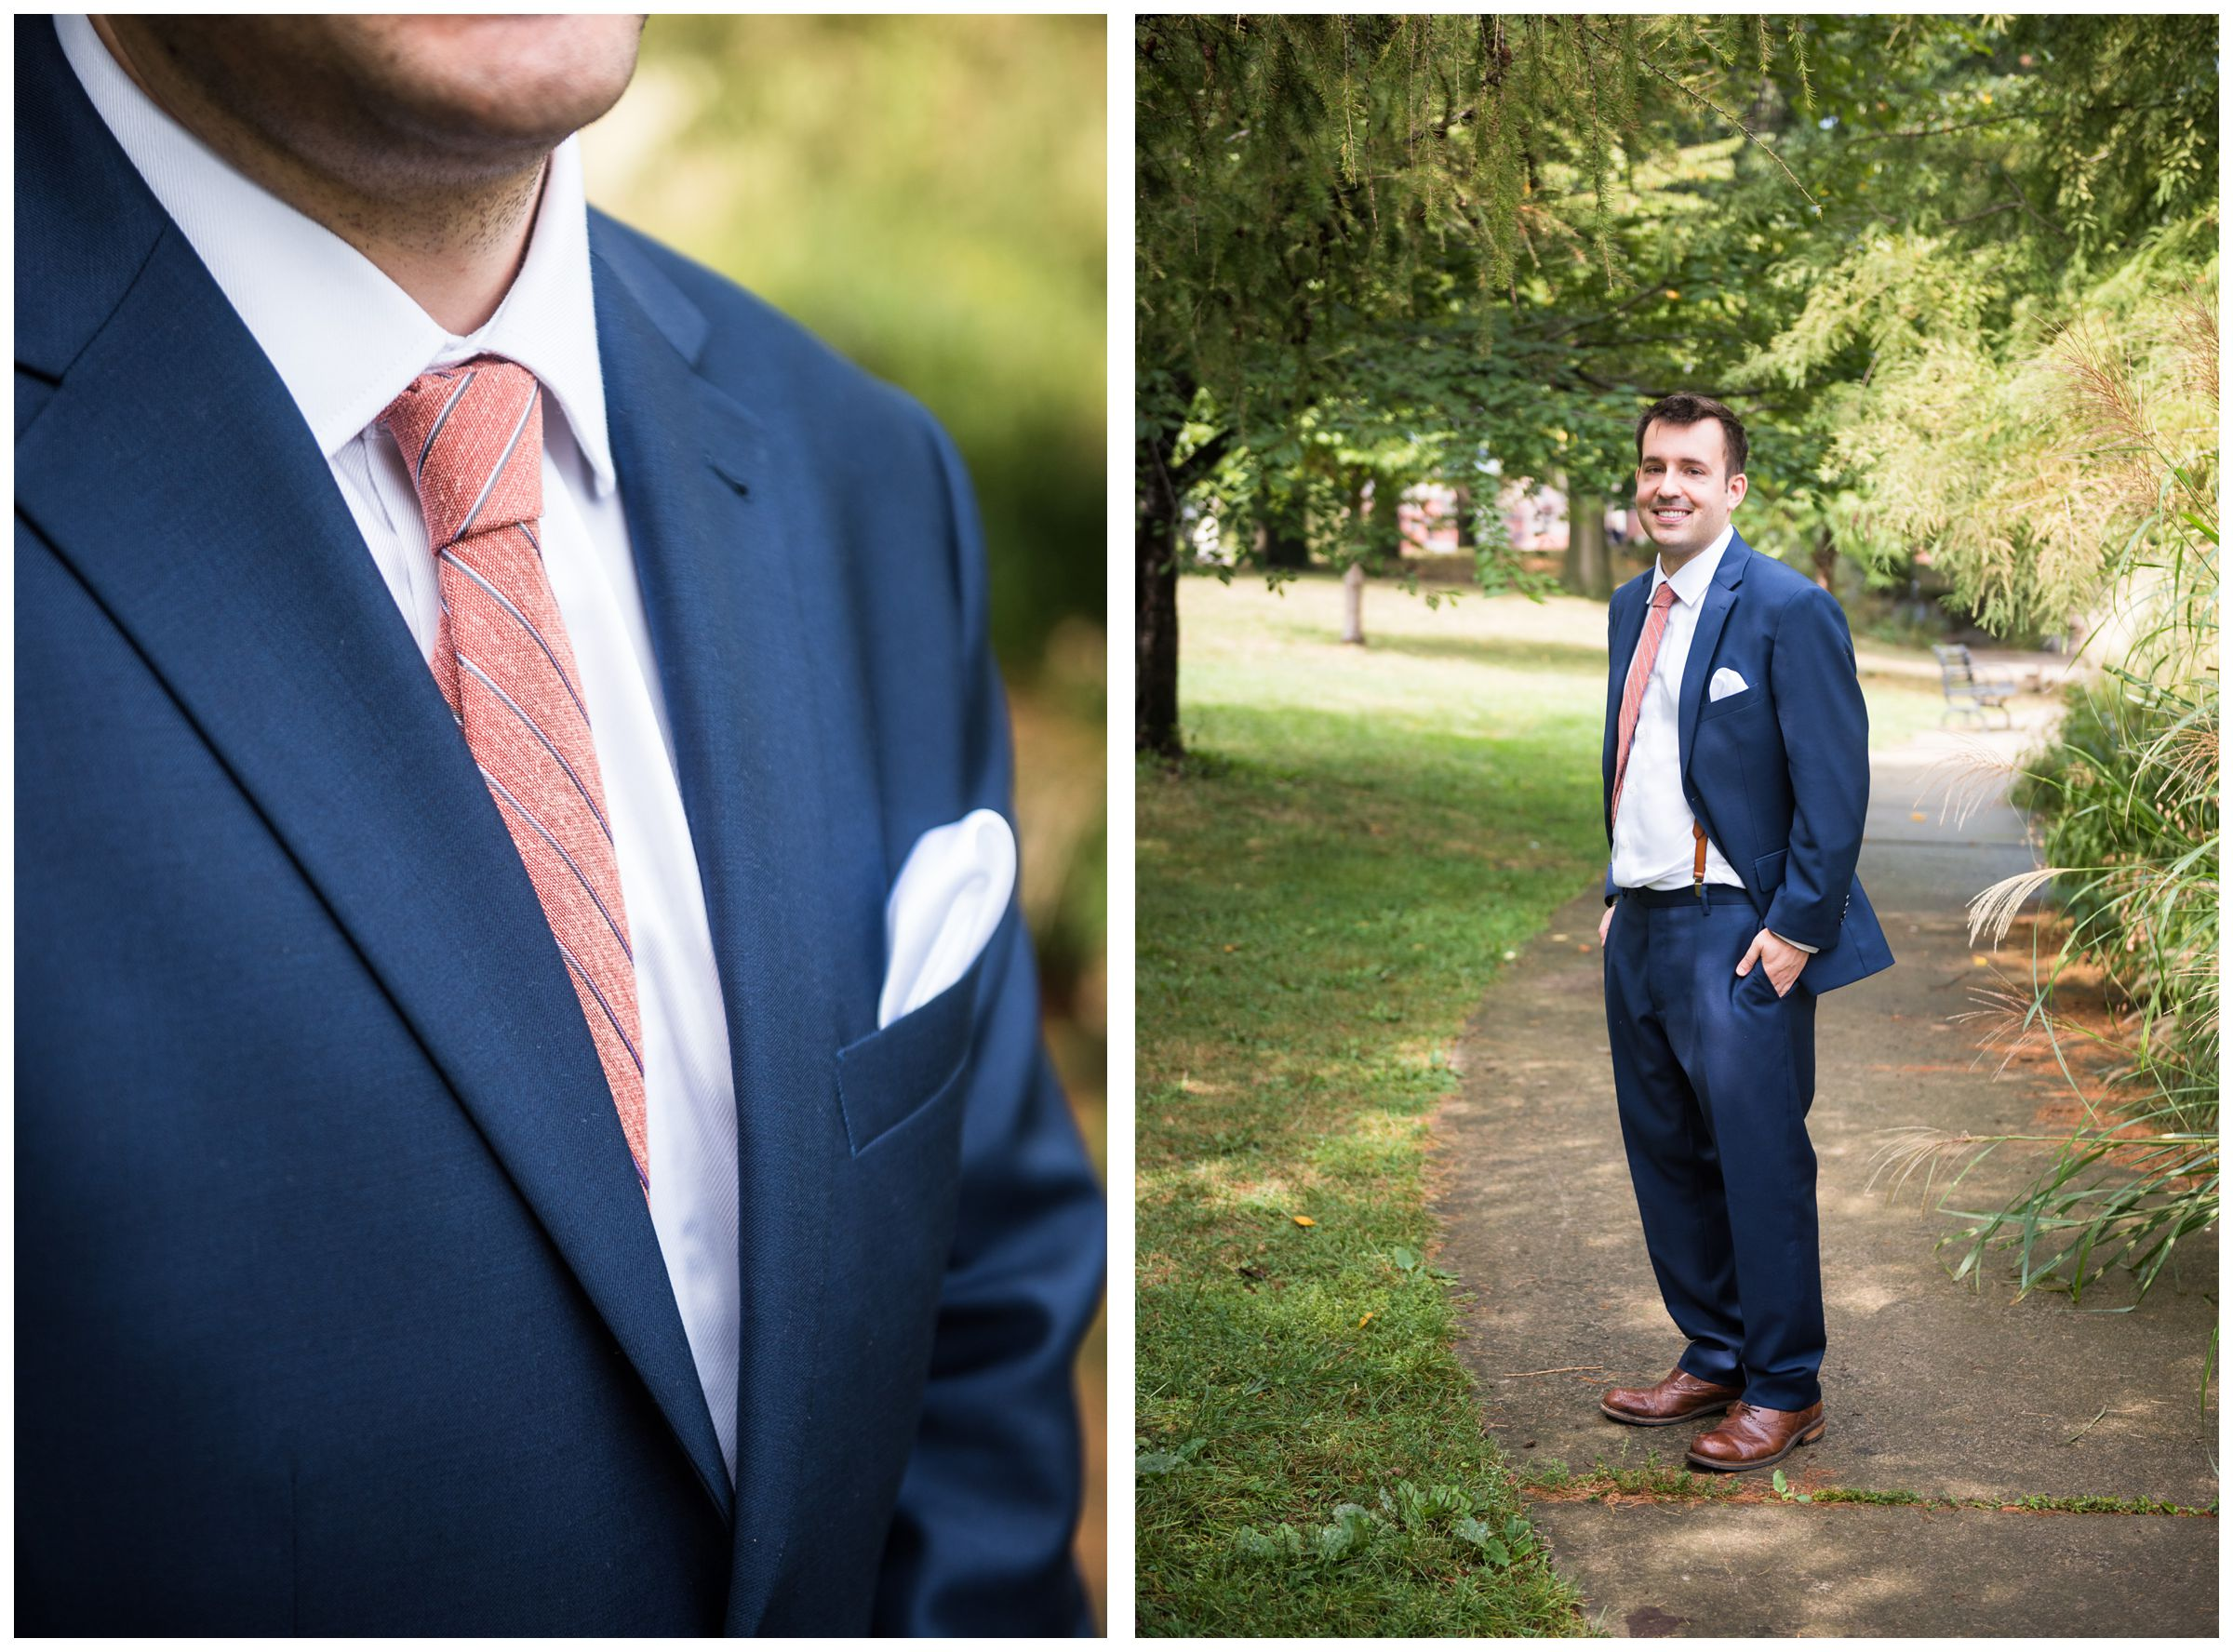 groom wearing navy blue suit, suspenders, brown shoes, and coral red tie on wedding day